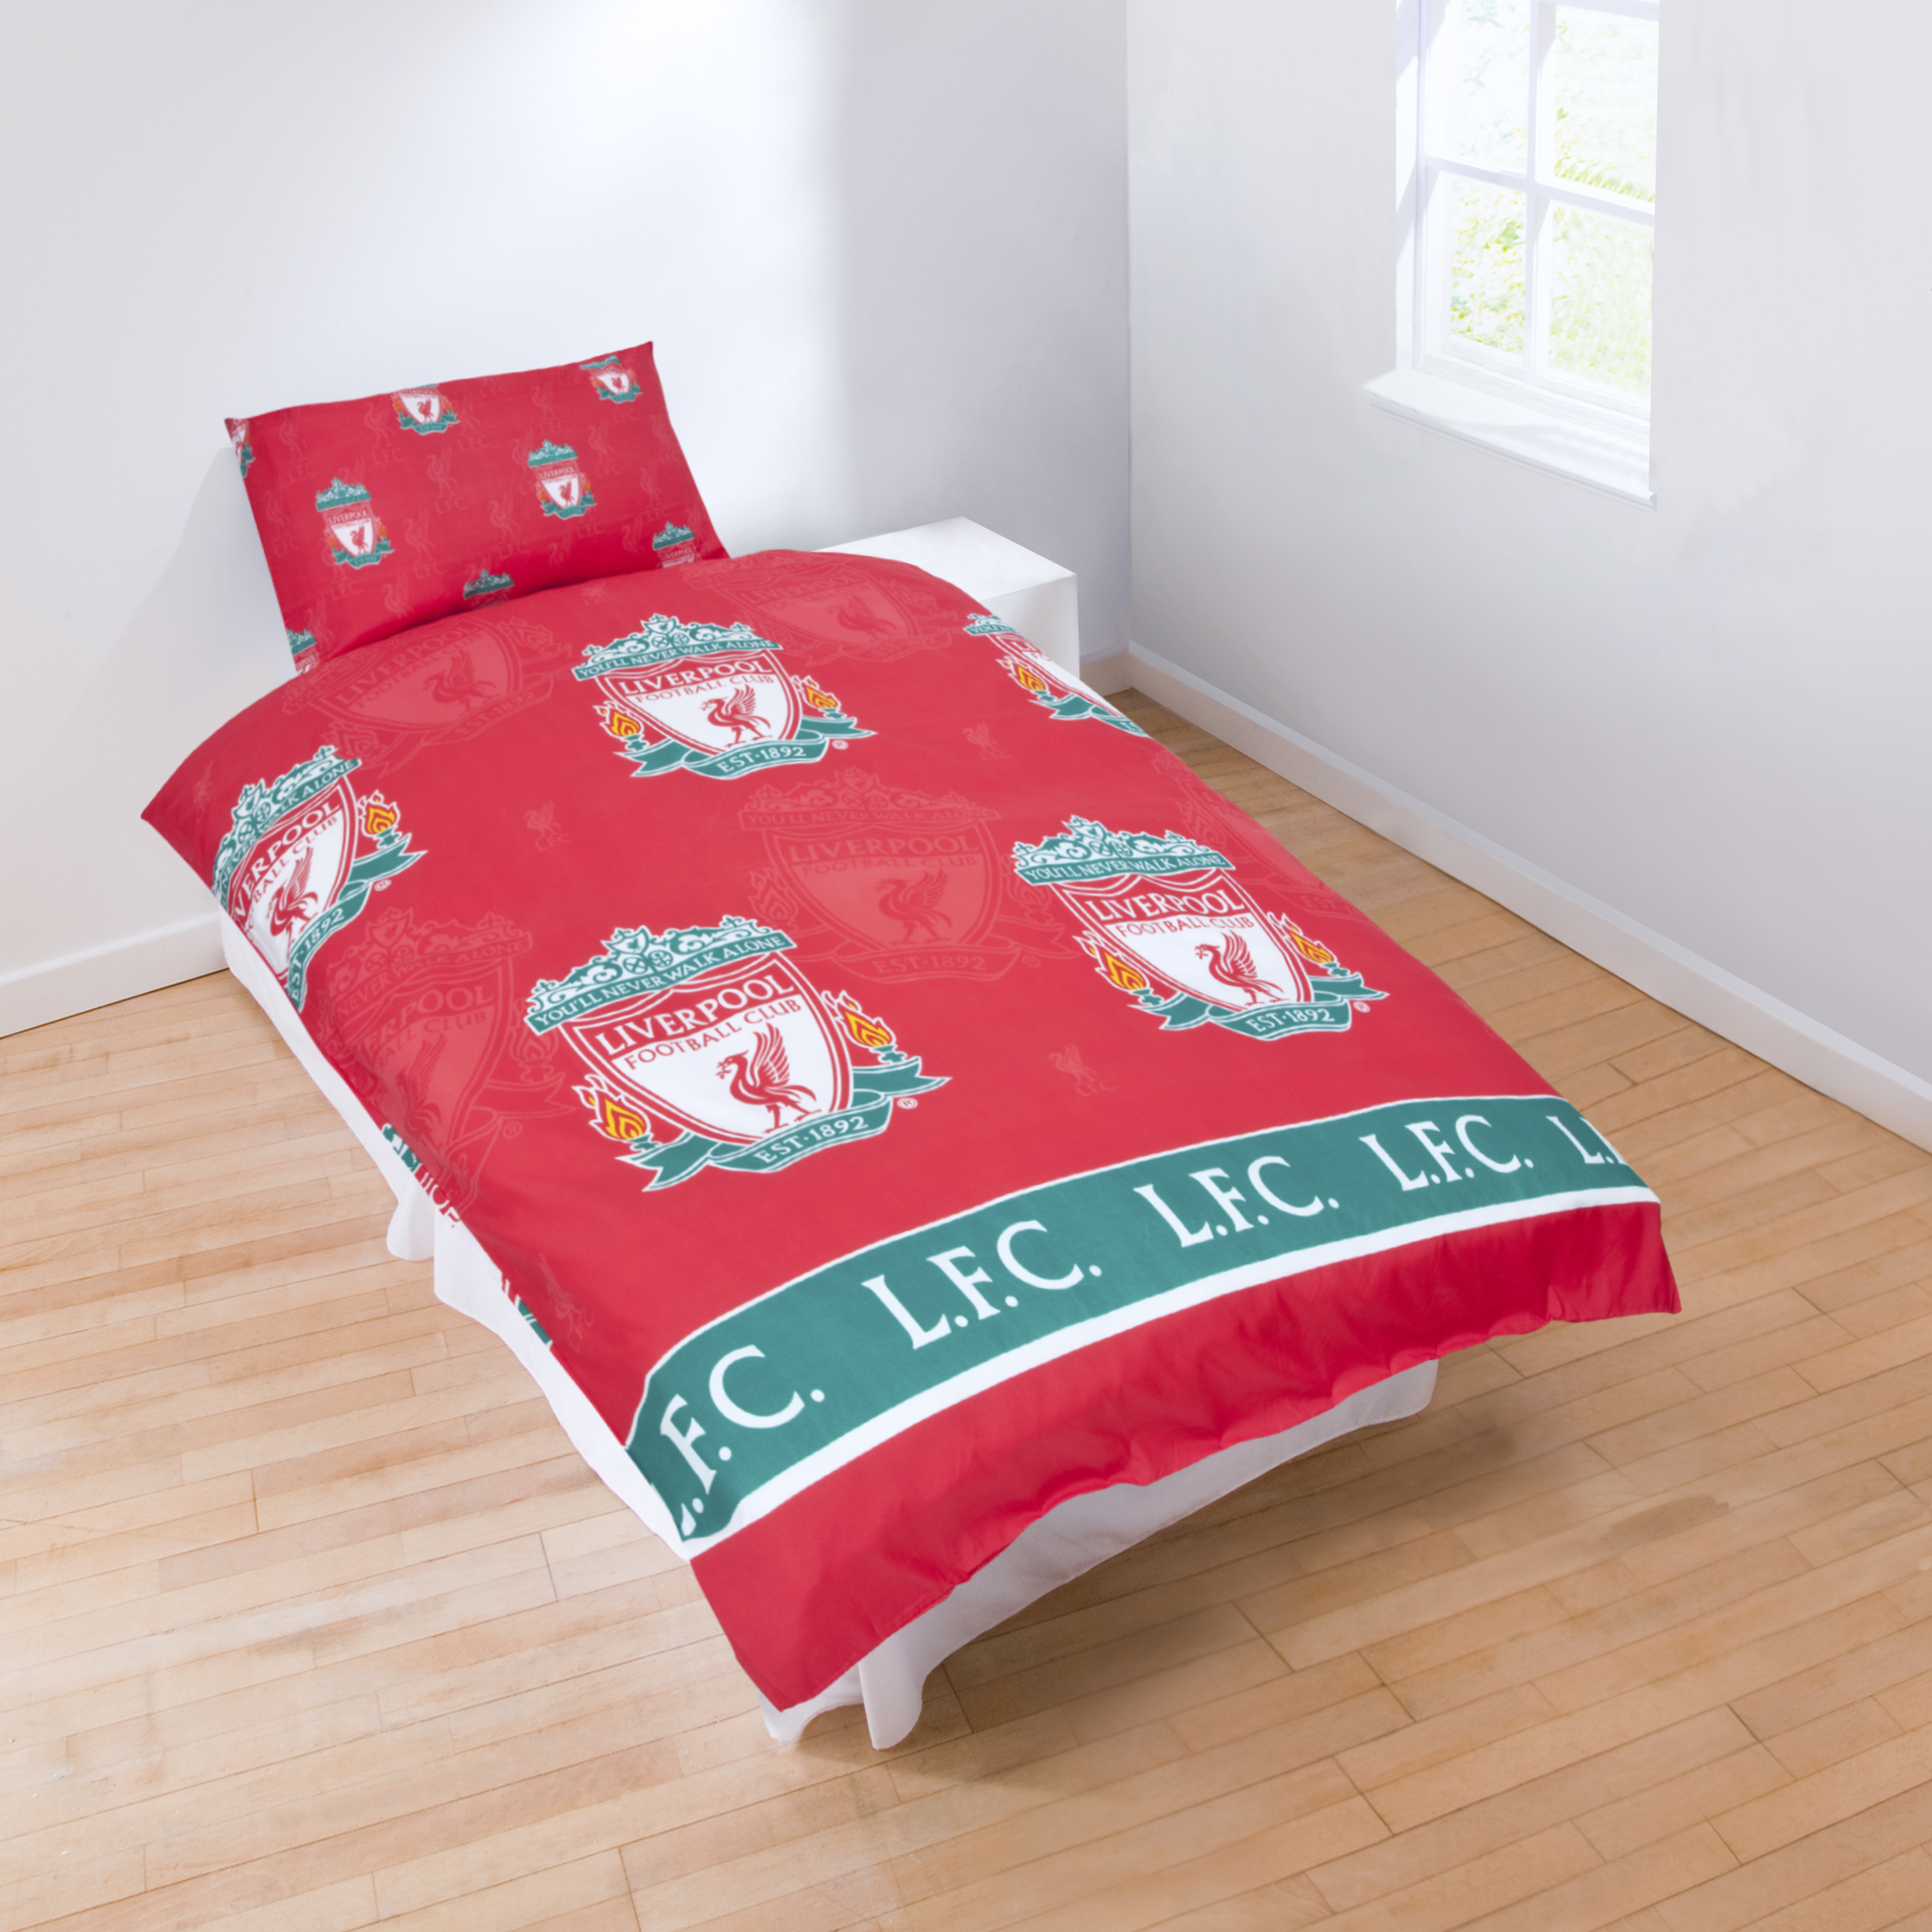 Liverpool FC Single Duvet and Pillowcase